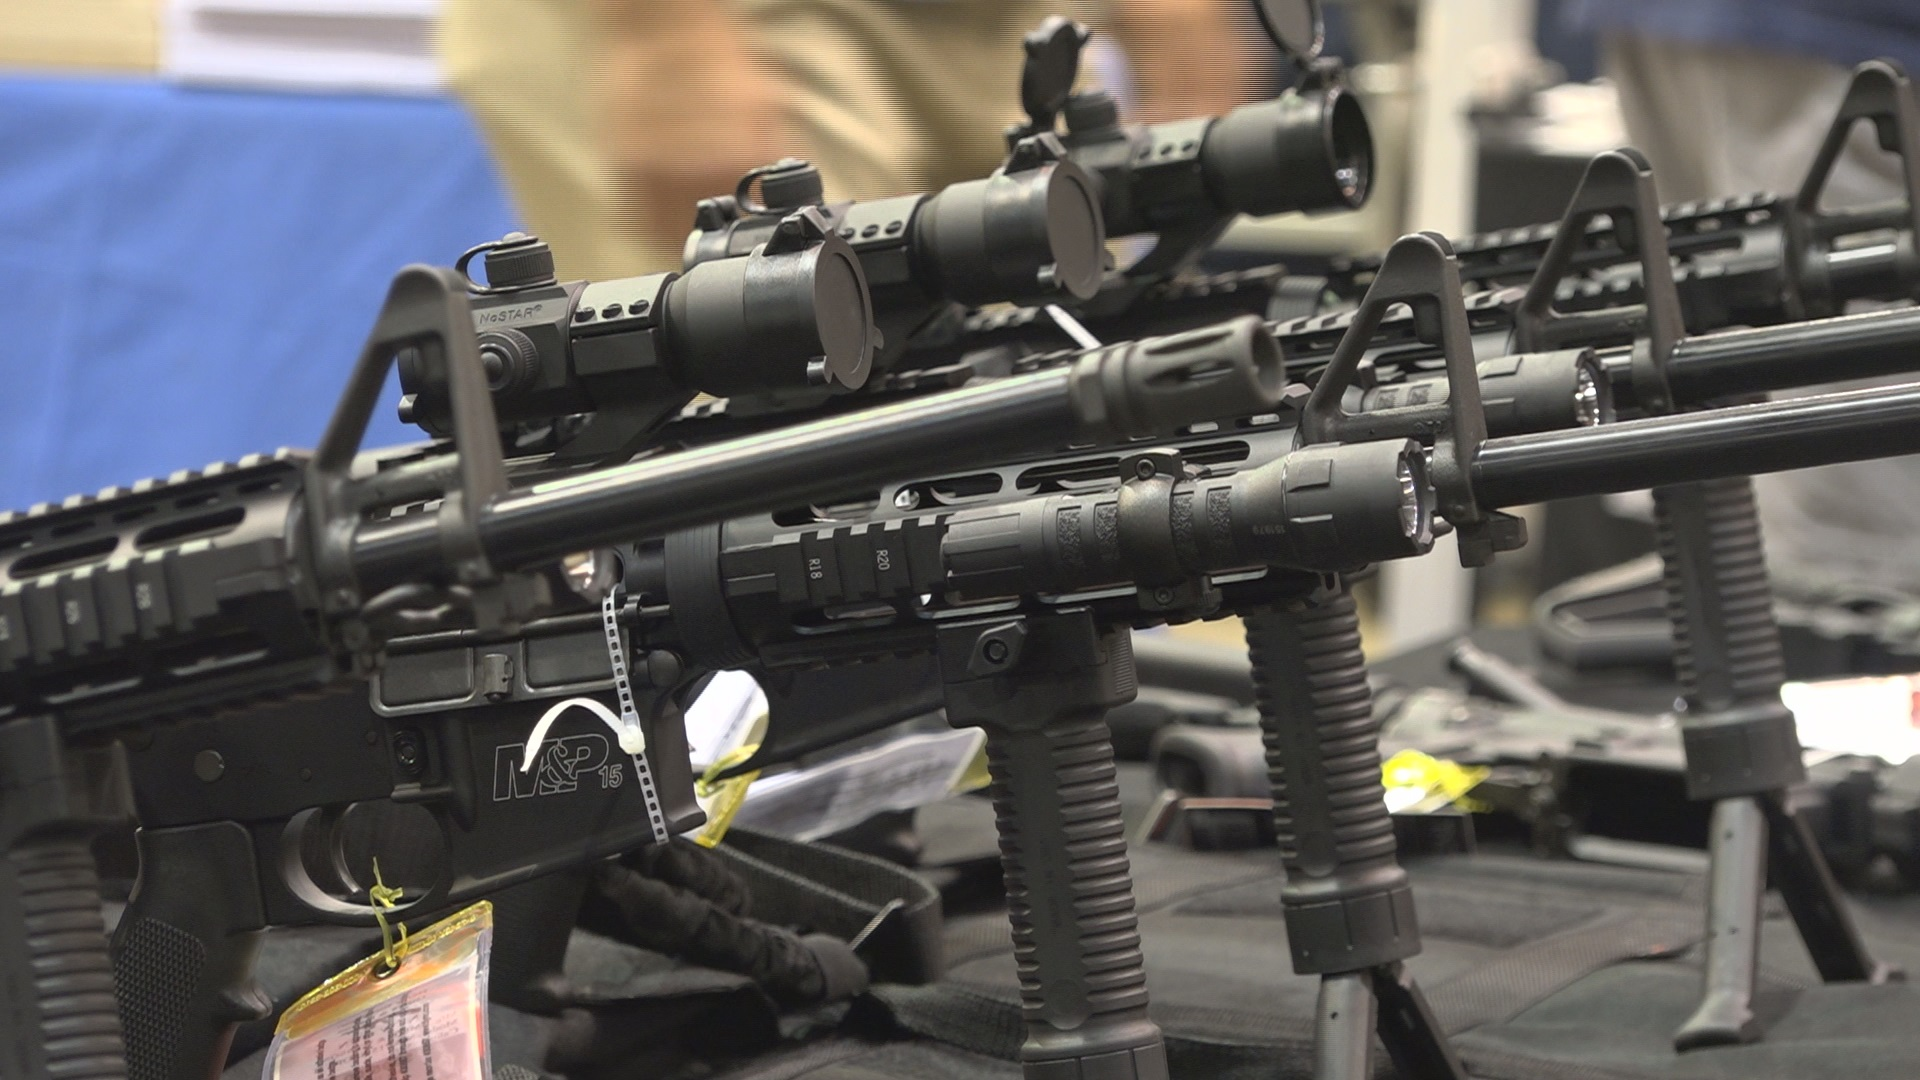 the gun control debate The twitter debate about gun control has taken many twists and turns since the newtown killings, according to a new pew research report that looks at the.